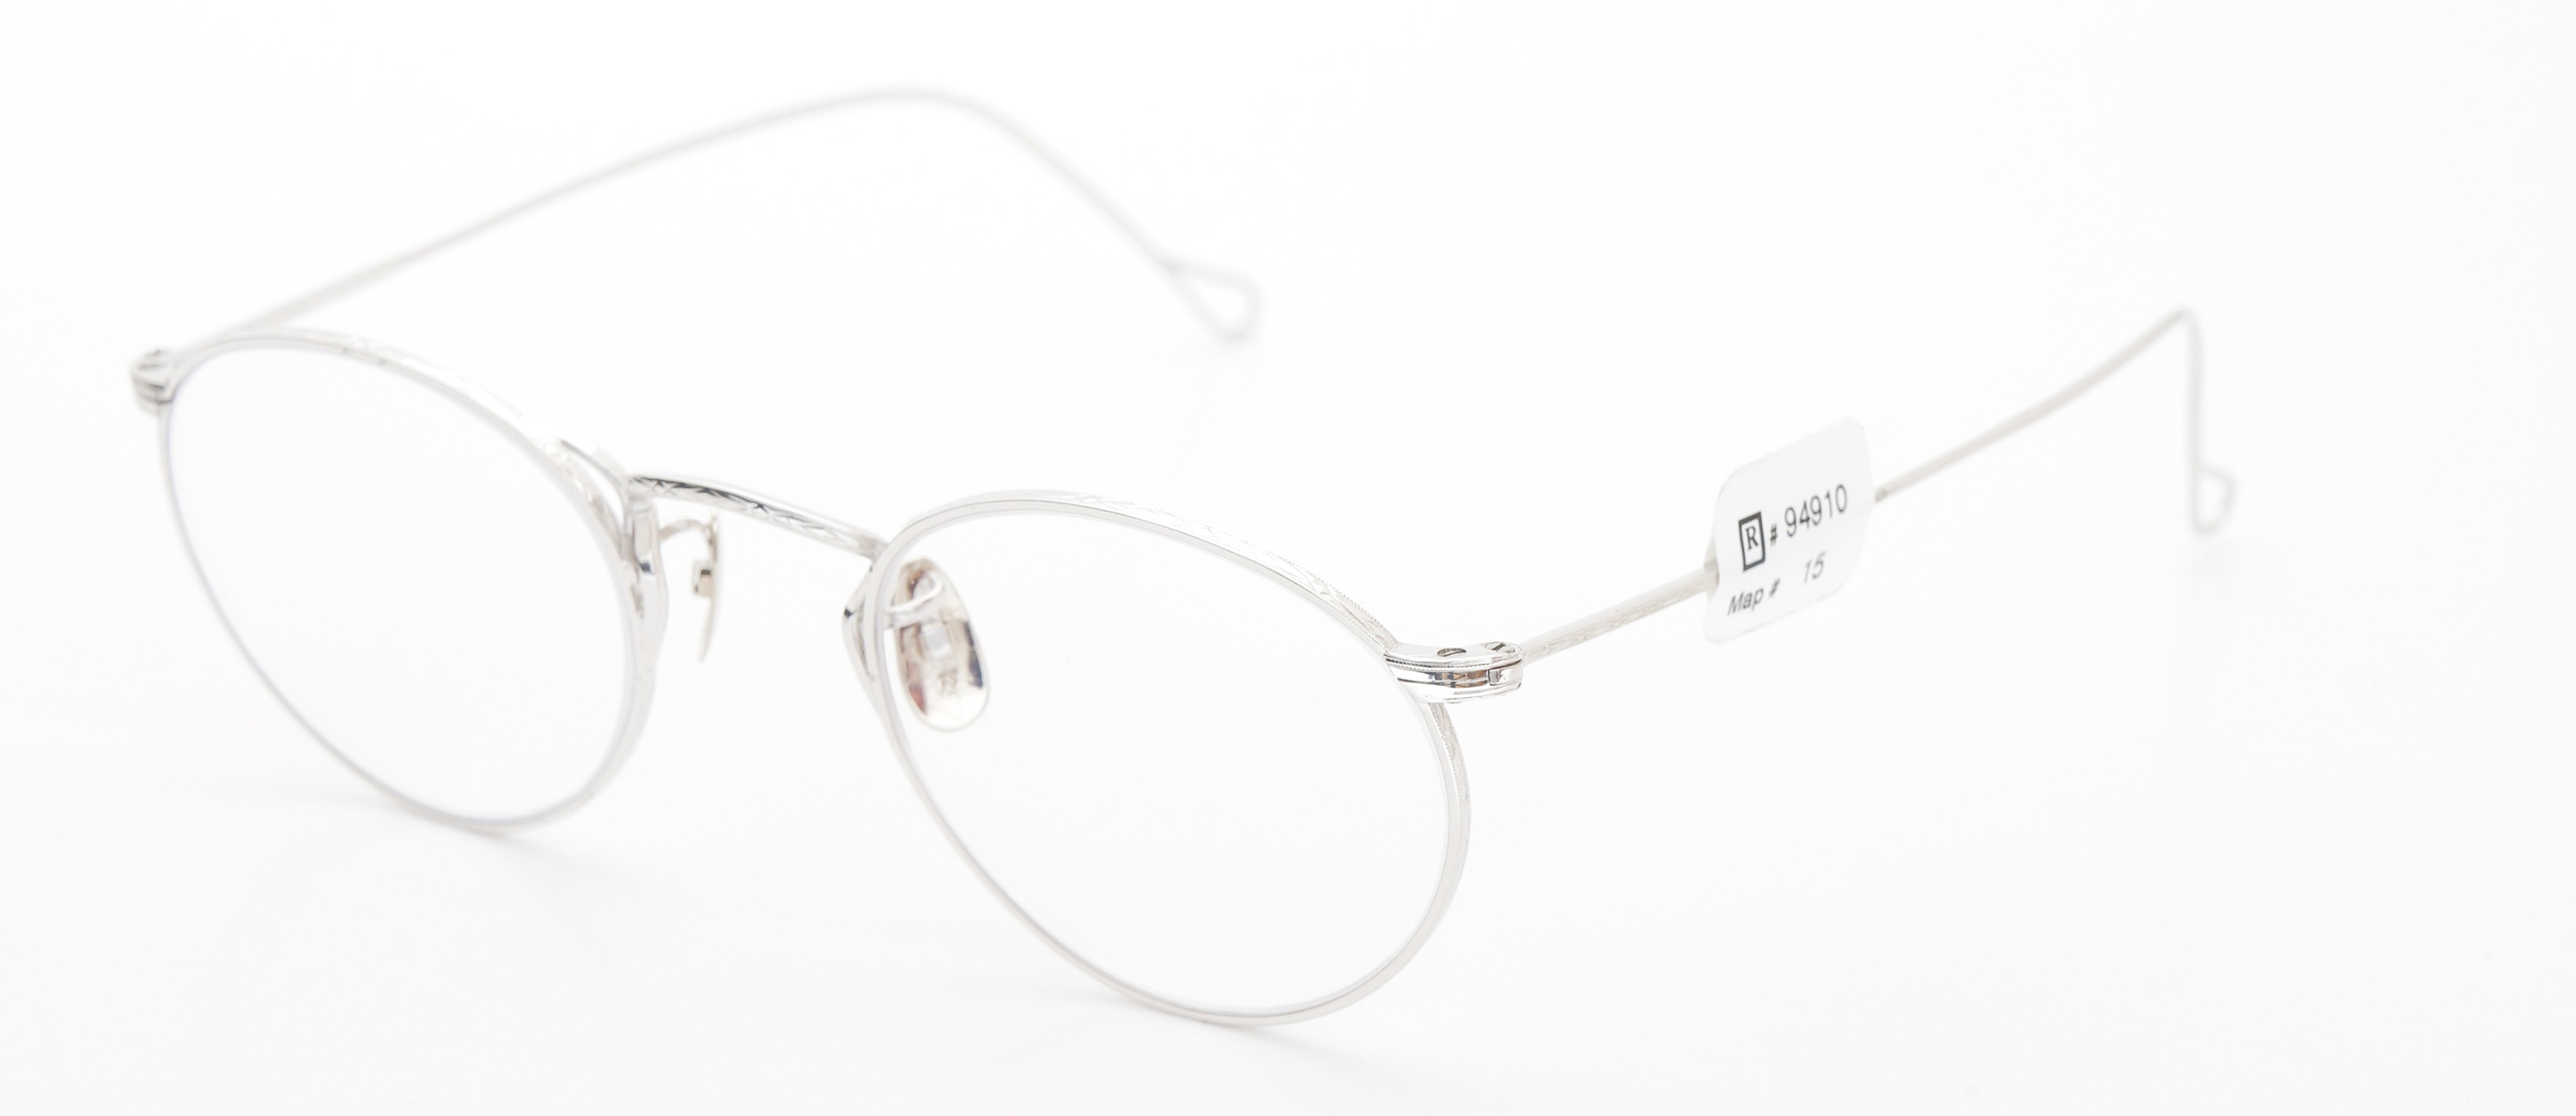 The Spectacle メガネ 1937 Artcraft Optical The-Artbit NOKOROD P-6 WG 12kPads 45-21 イメージ3